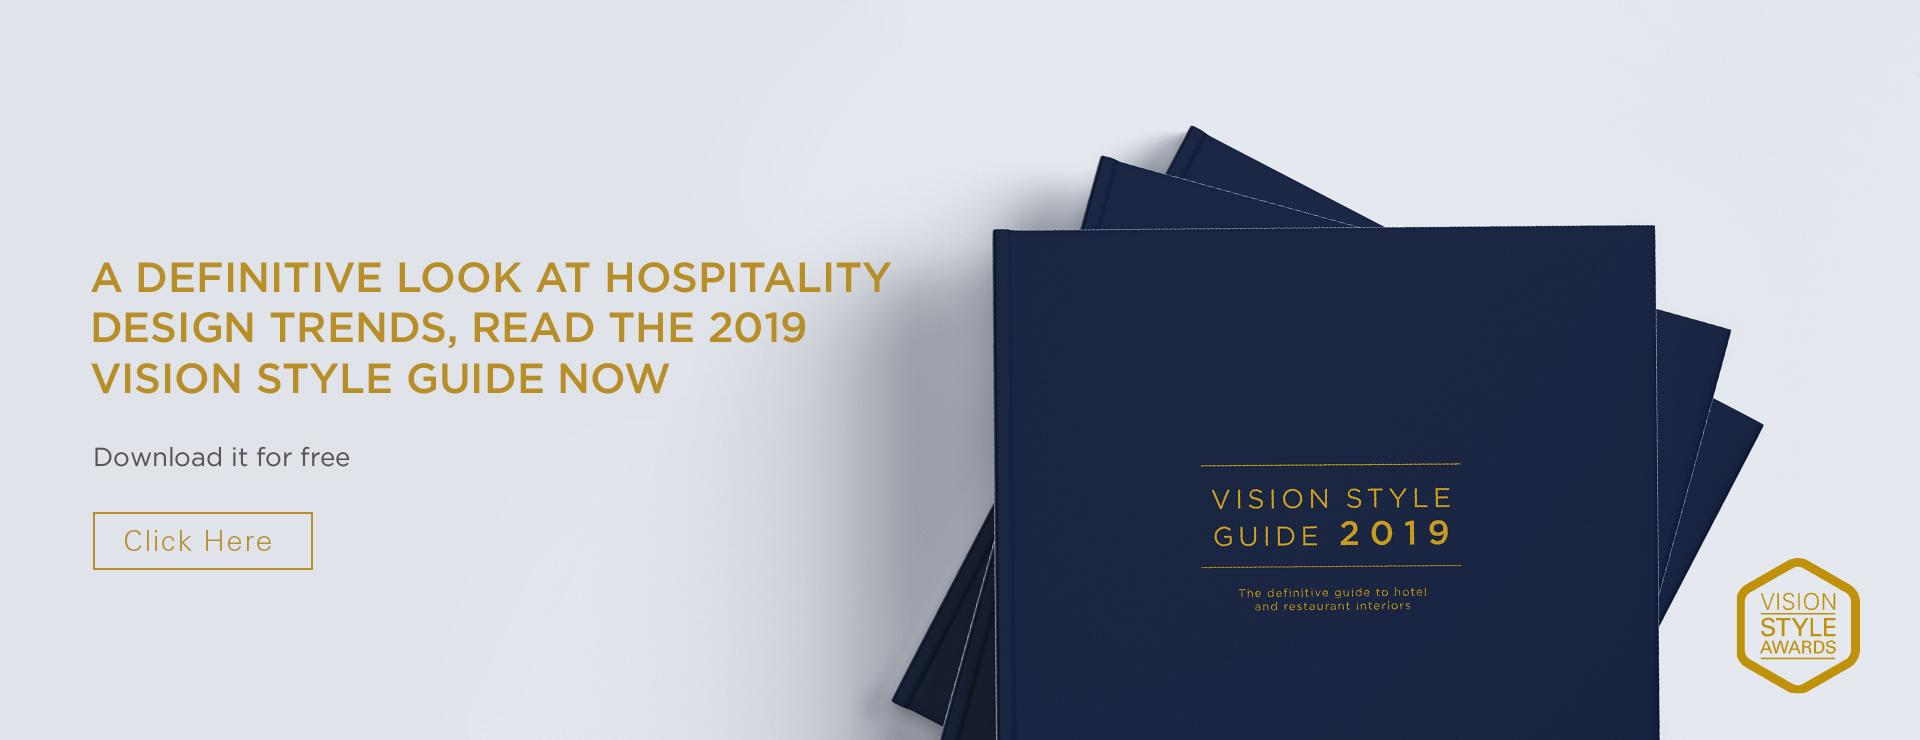 Download the 2019 Vision Style Guide